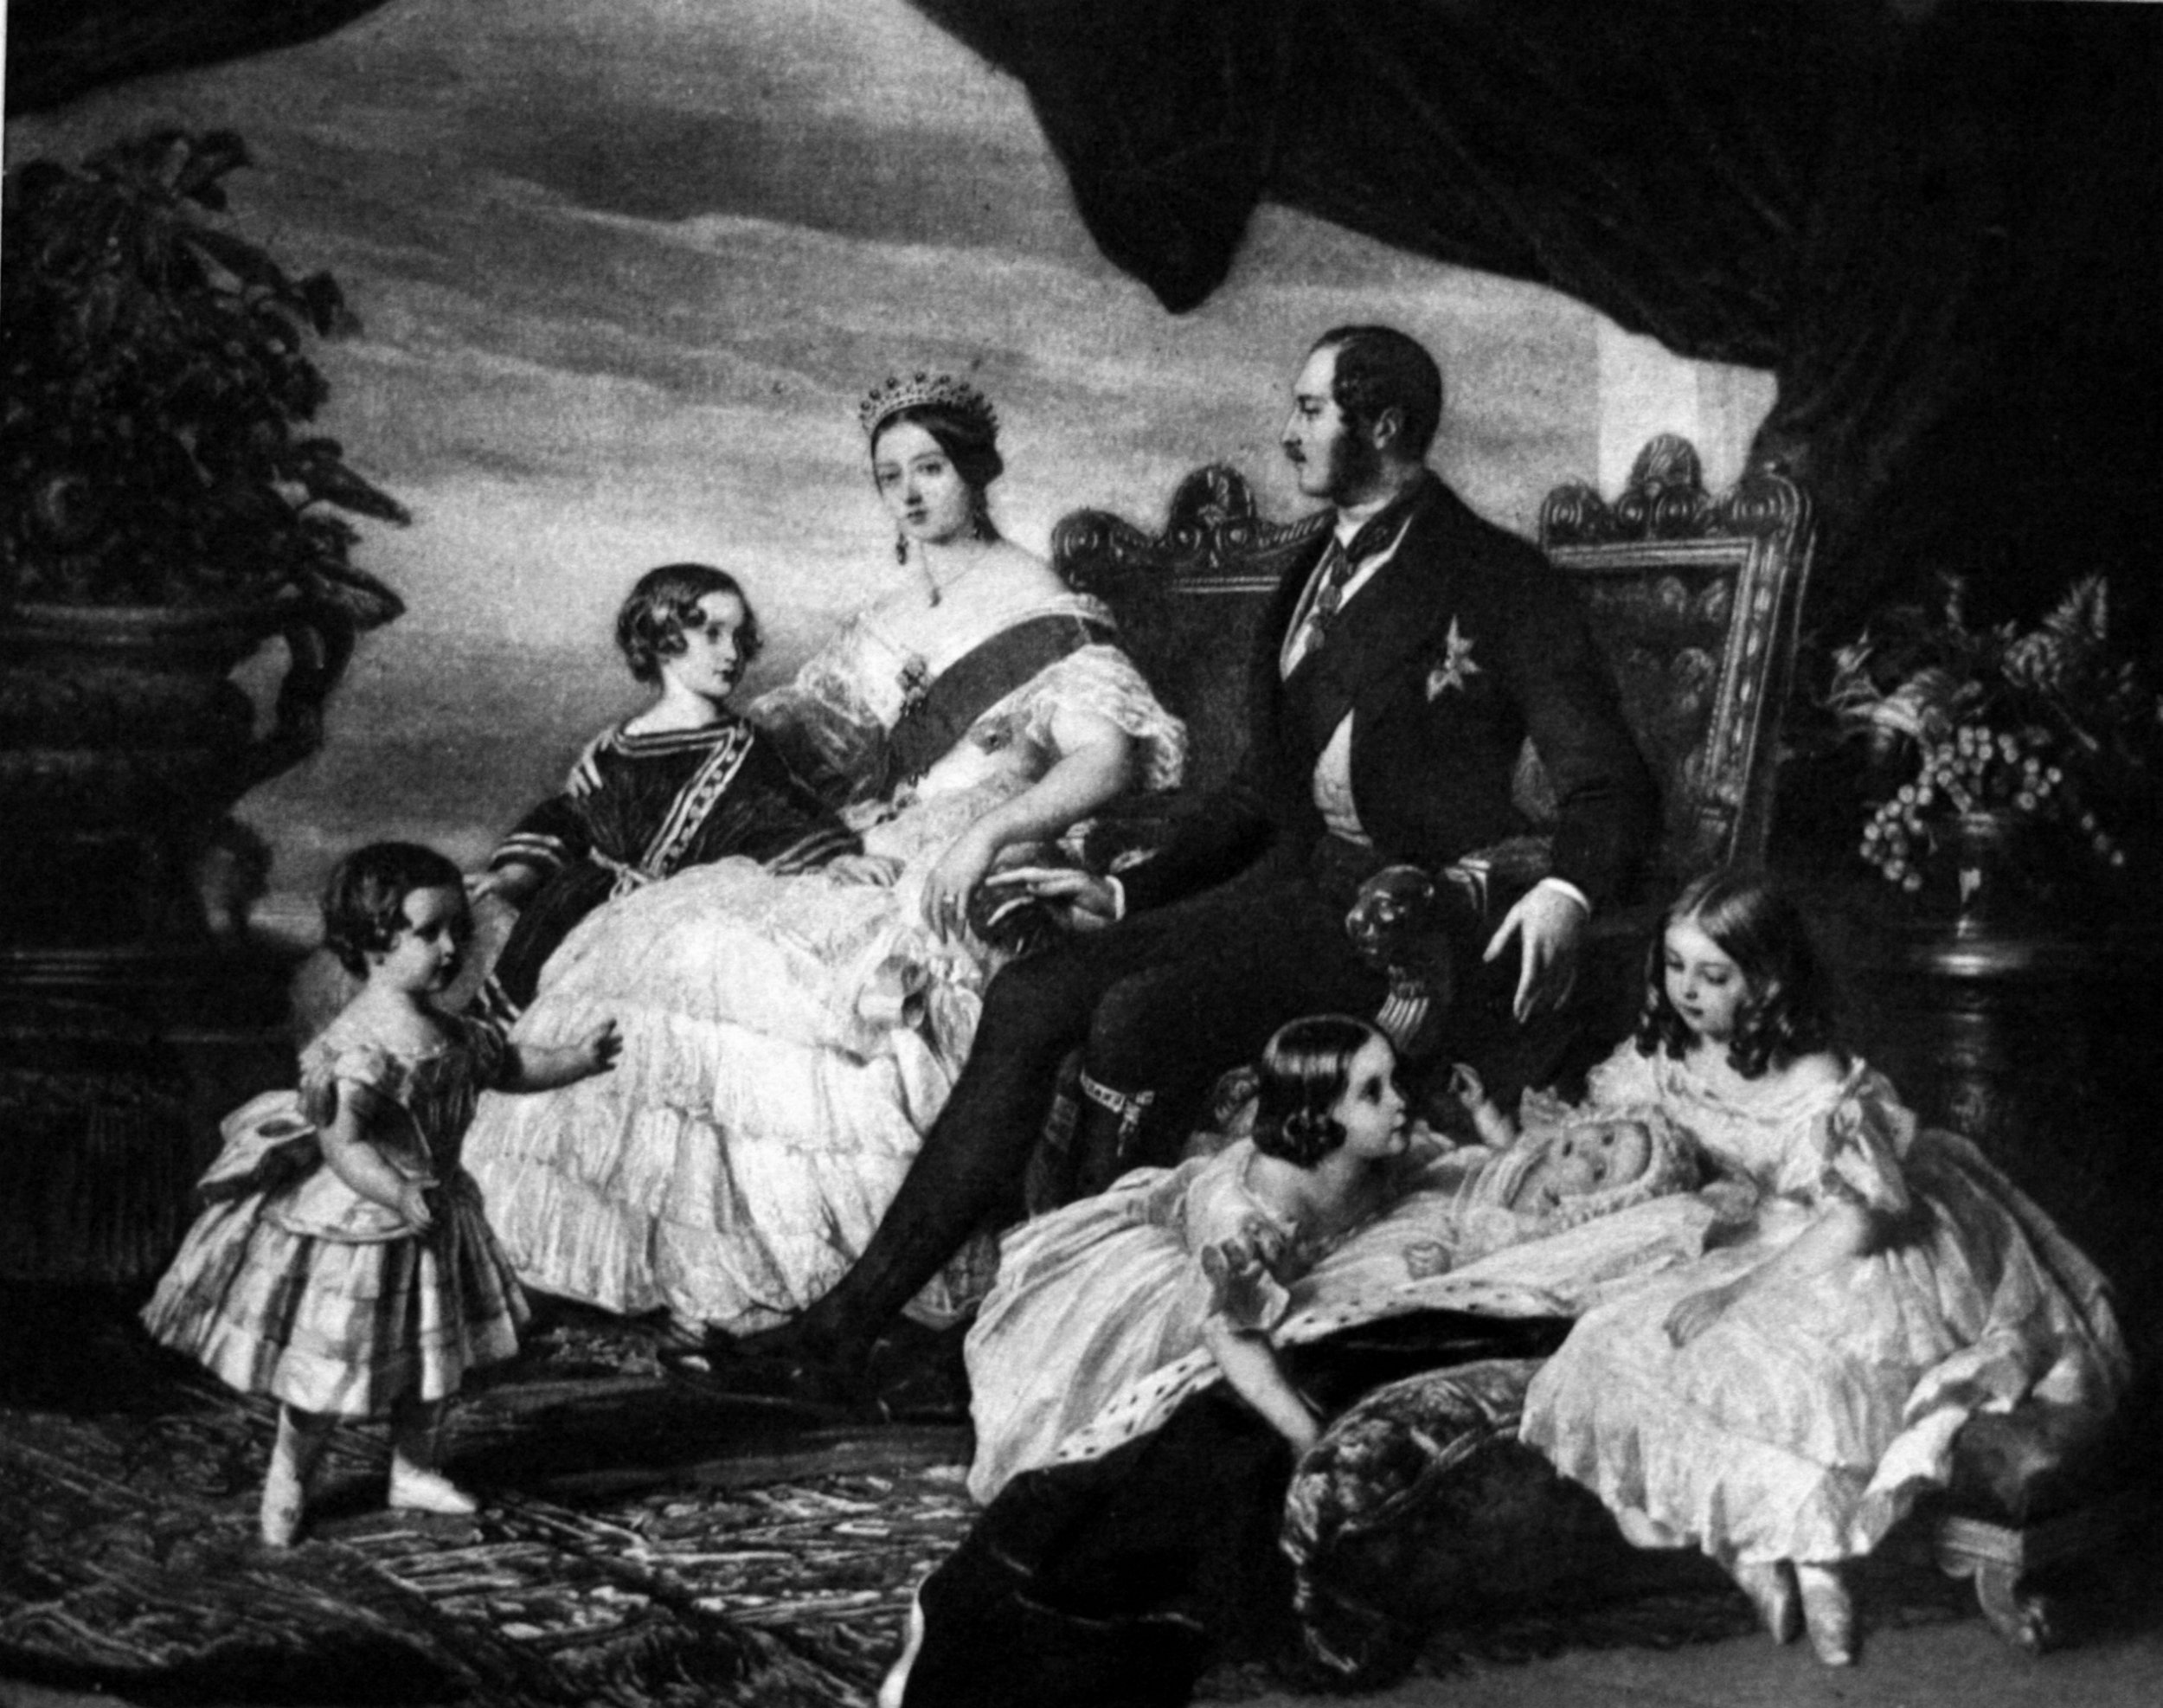 How many children did Queen Victoria have and who were they?